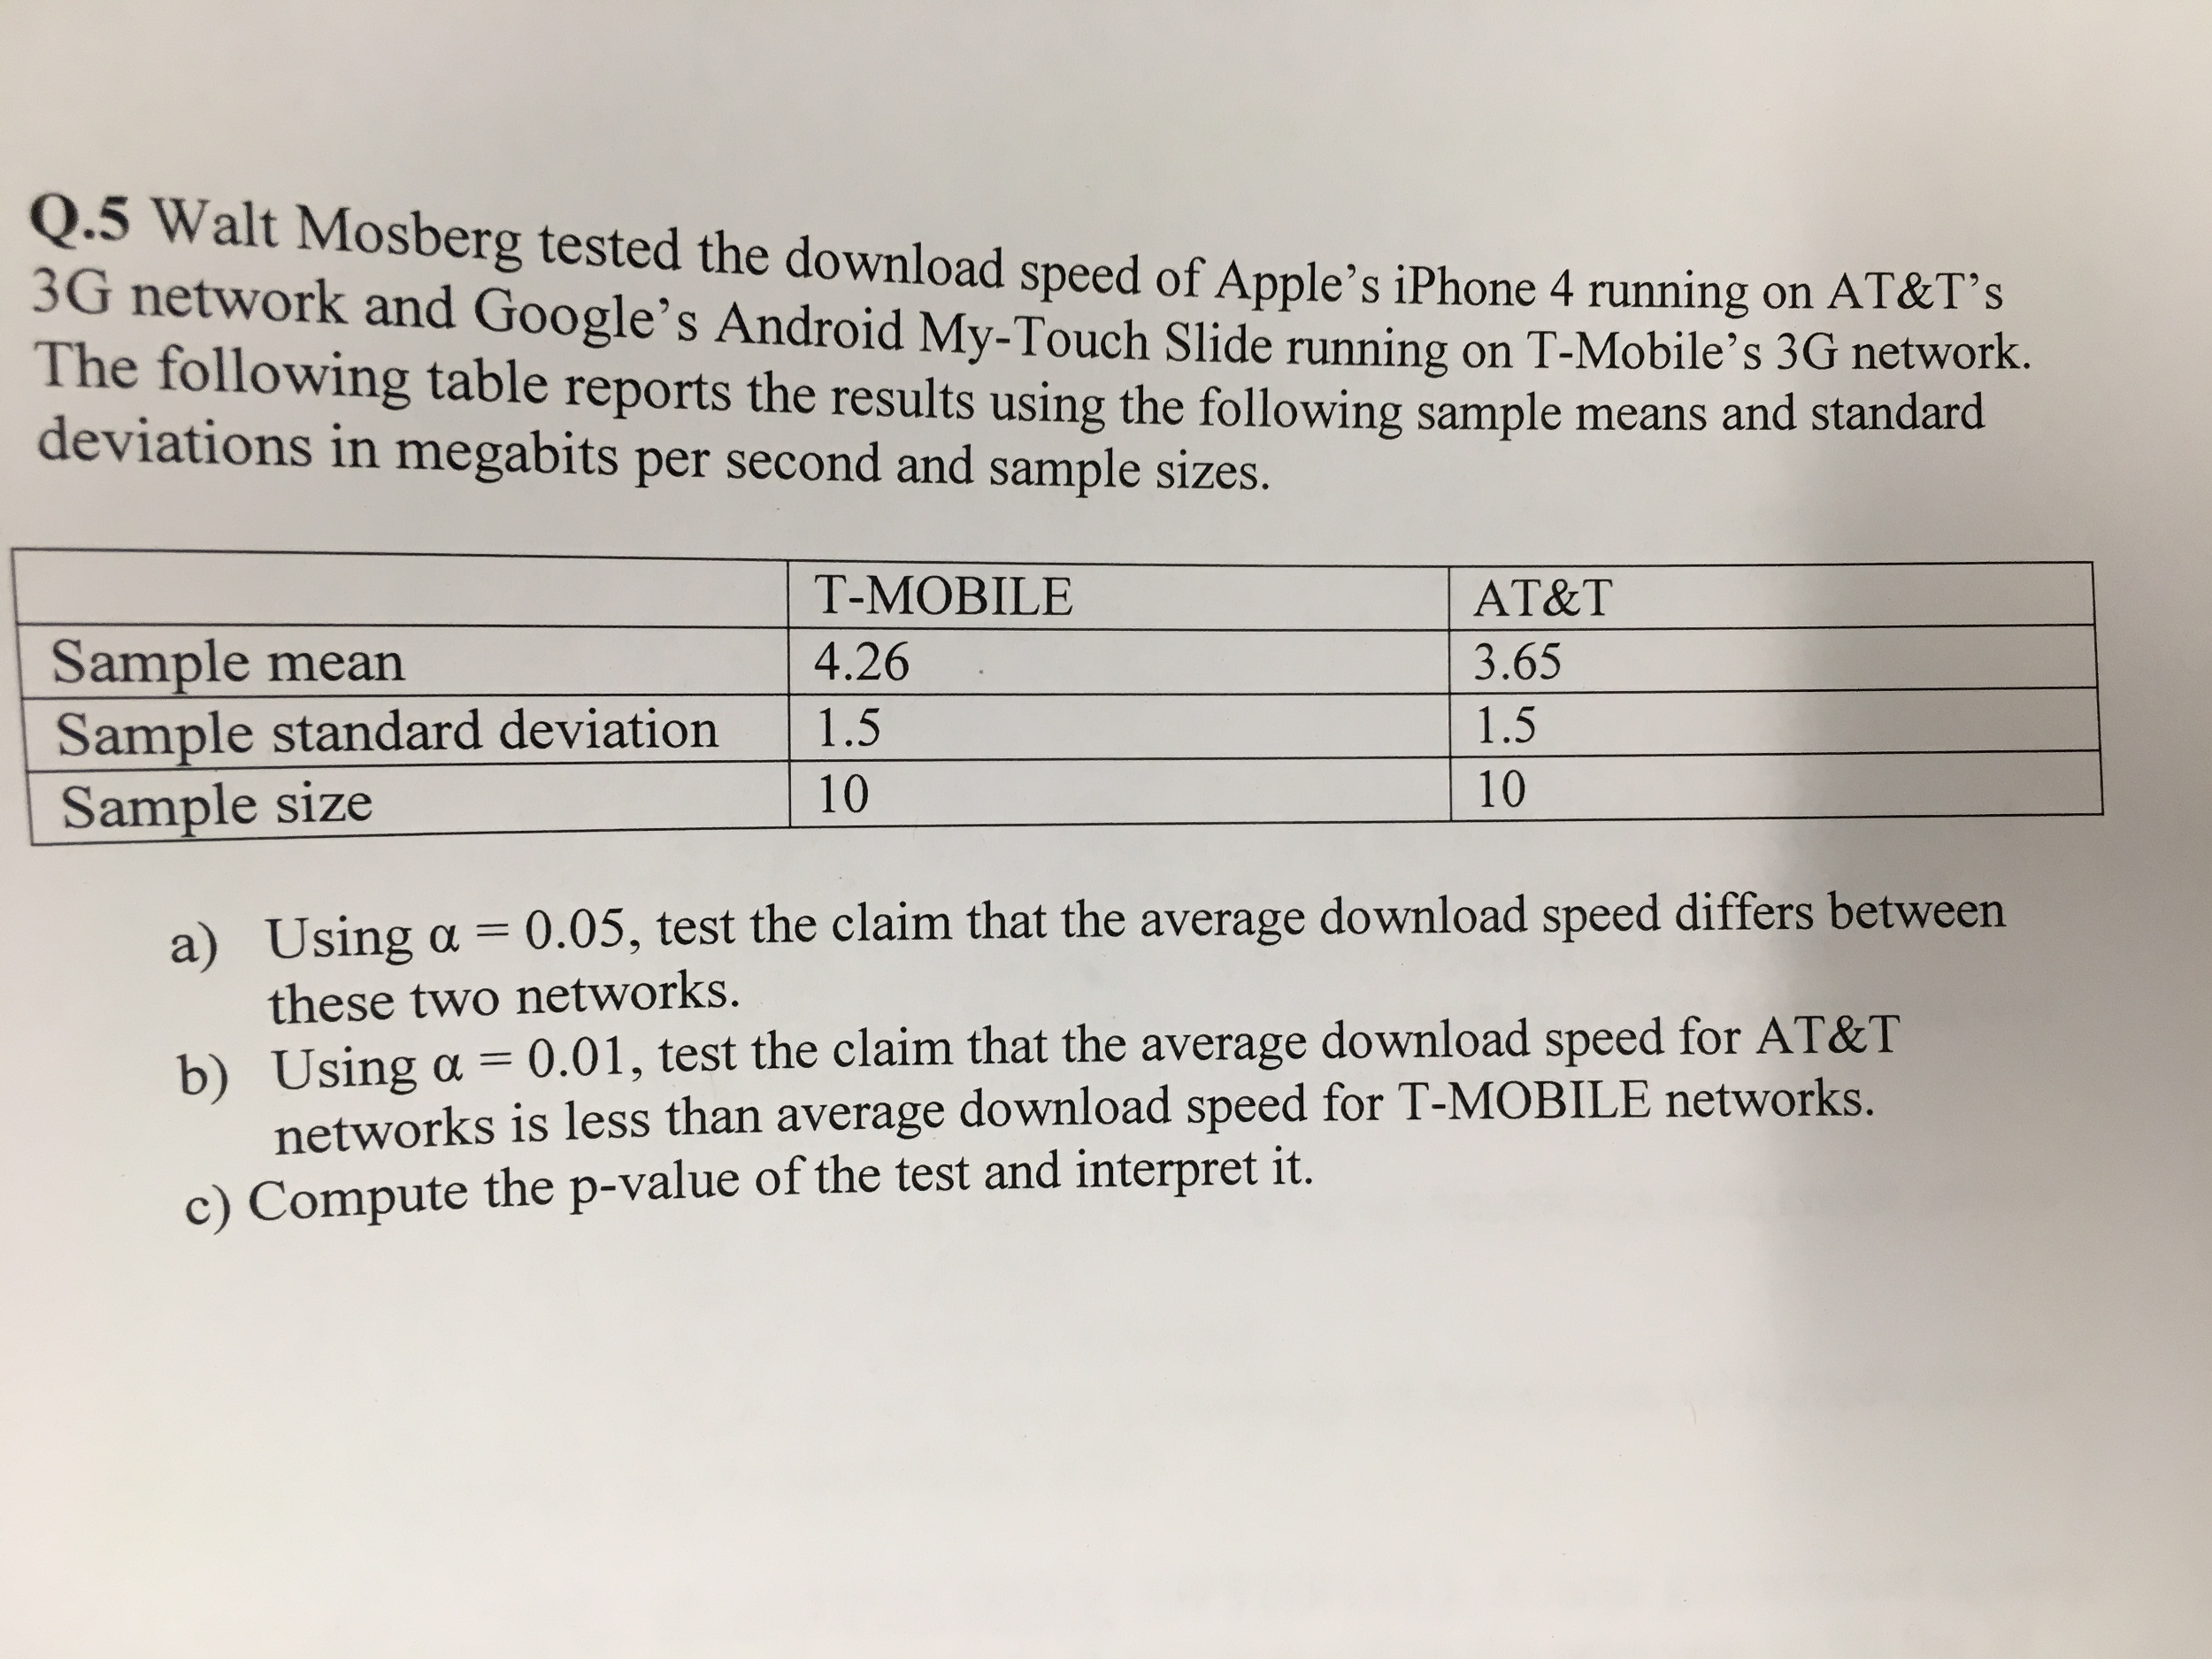 Solved: Walt Mosberg Tested The Download Speed Of Apple's